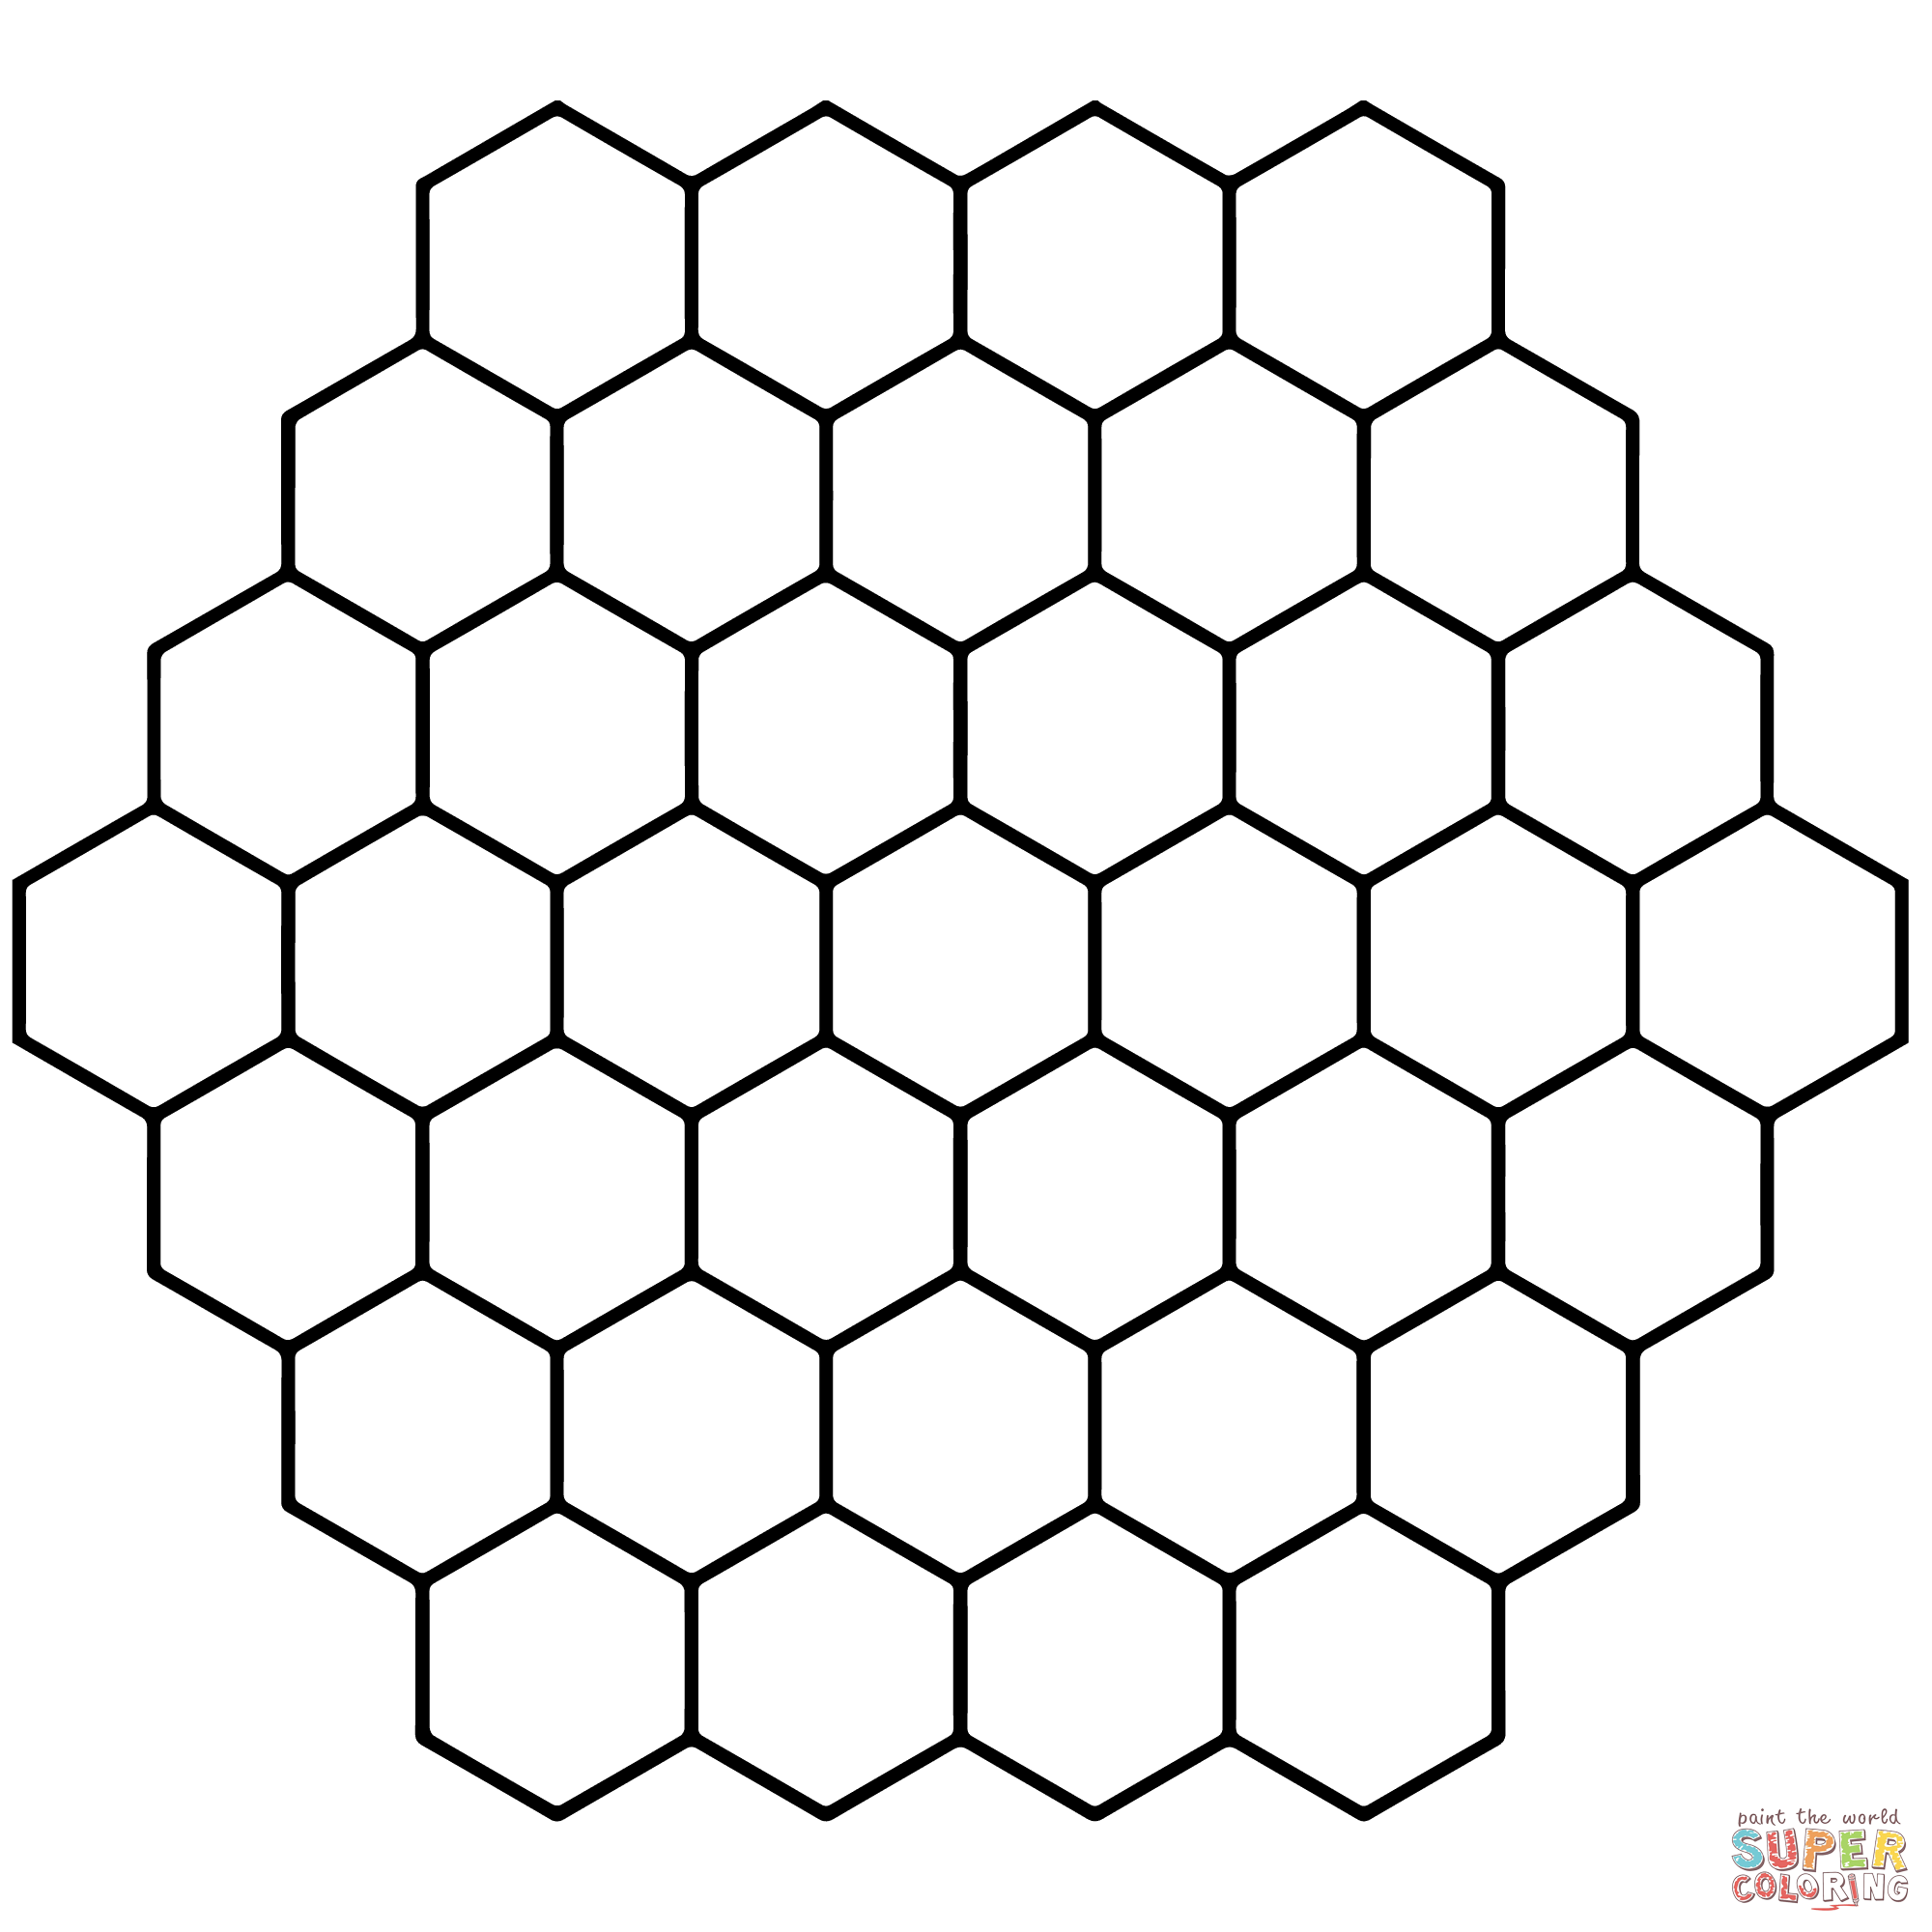 image about Printable Hexagons named Hexagon Honeycomb Tessellation Coloring Website page Free of charge